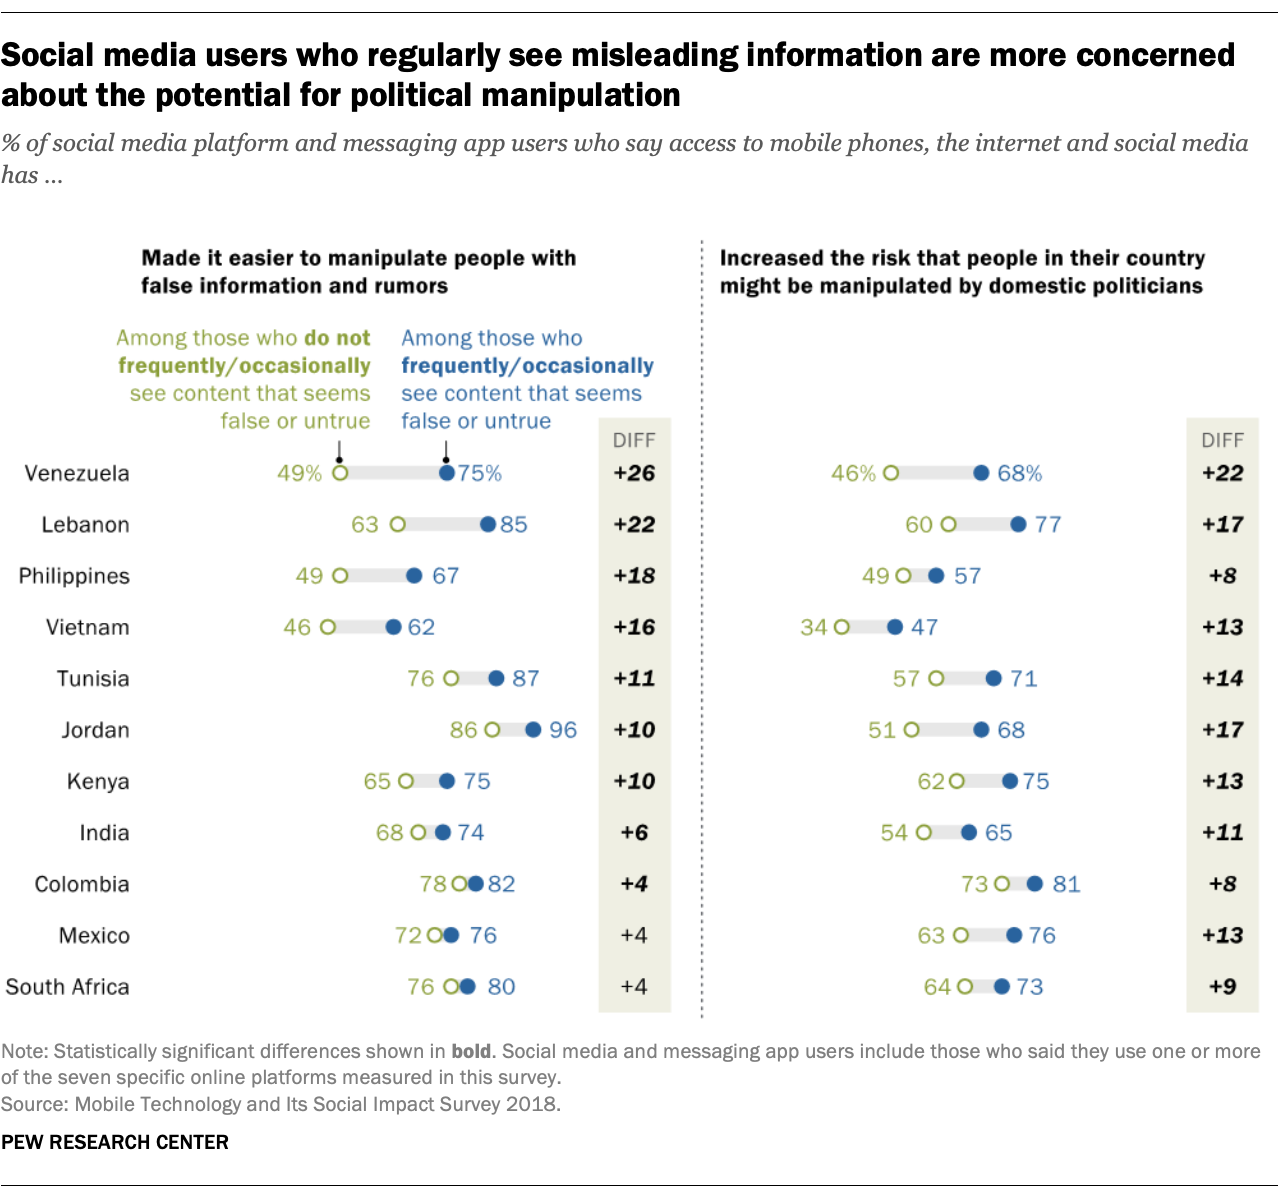 Social media users who regularly see misleading information are more concerned about the potential for political manipulation